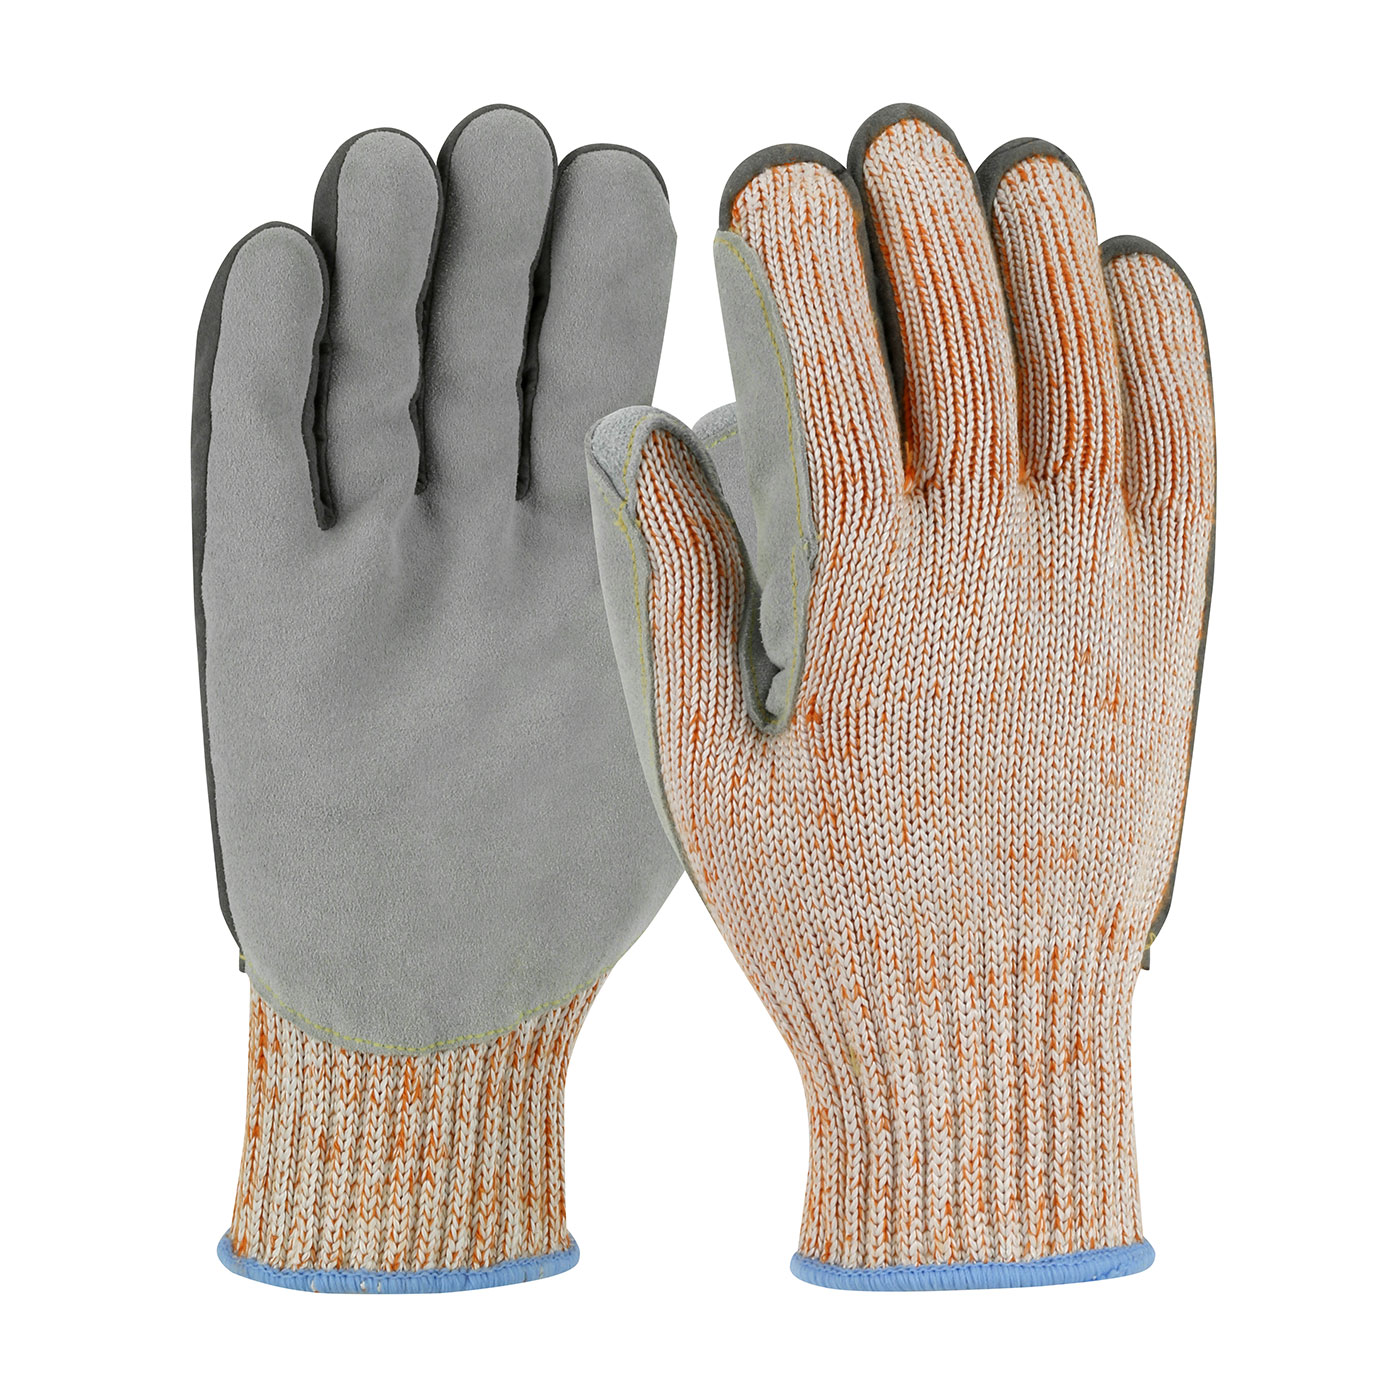 Seamless Knit PolyKor Engineered Yarn Glove with Split Cowhide Leather Palm and Aramid Stitching - Vend-Ready, Orange, L